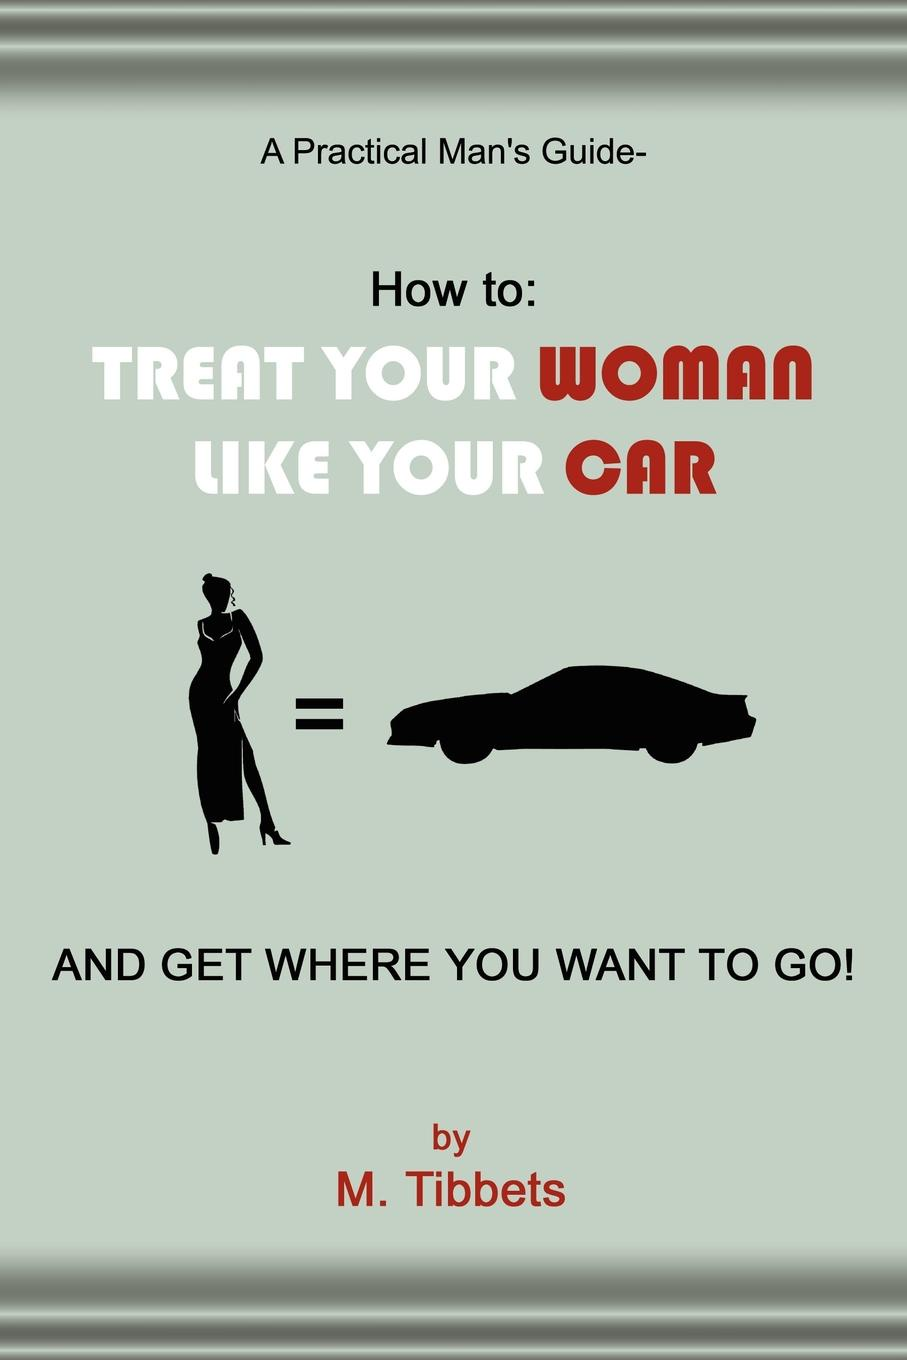 M. Tibbets A Practical Man's Guide-How to. TREAT YOUR WOMAN LIKE YOUR CAR AND GET WHERE YOU WANT TO GO! dana muir m a manager s guide to employment law how to protect your company and yourself